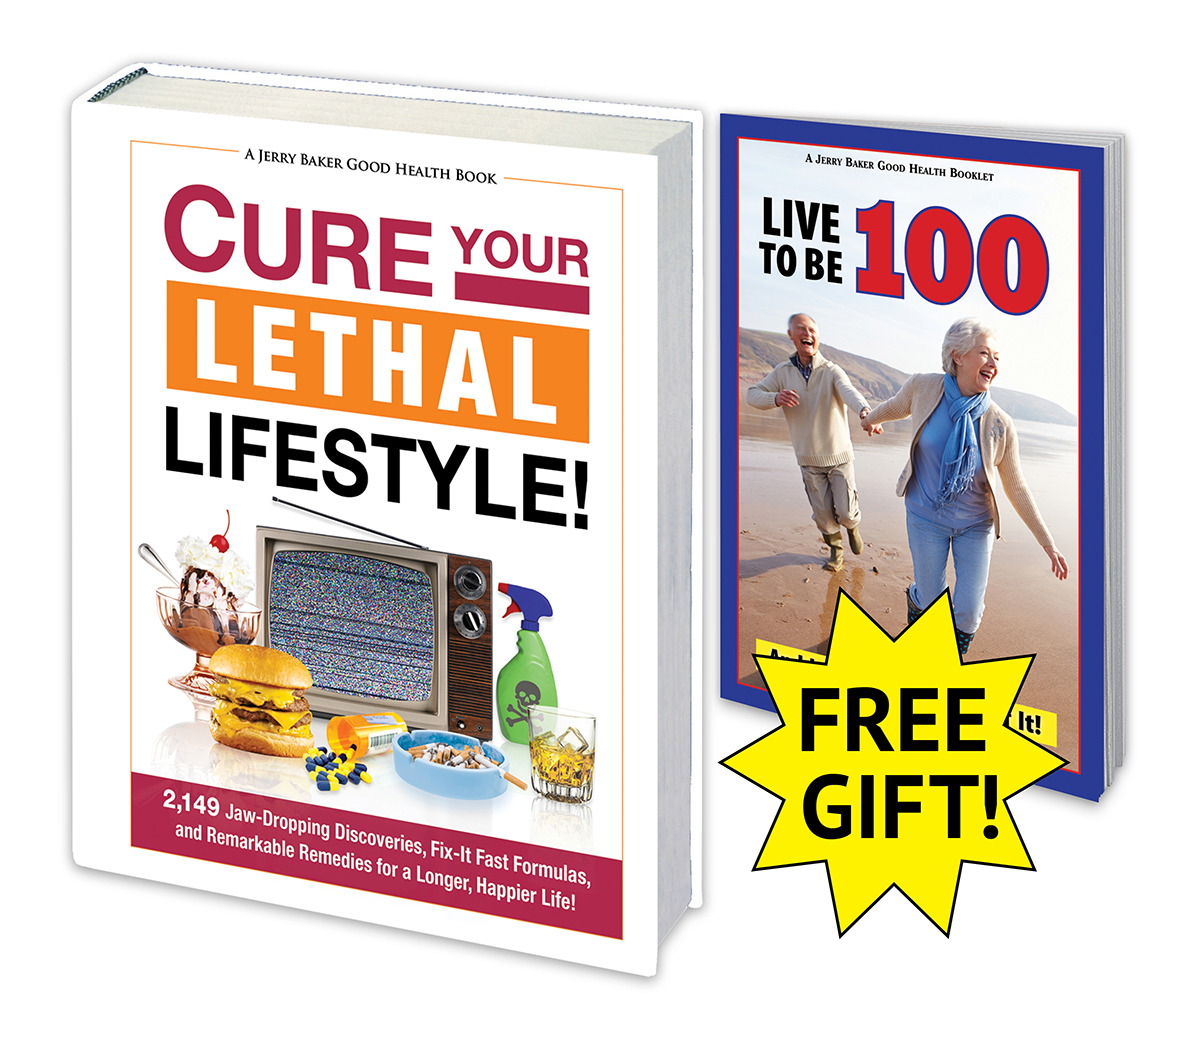 Cure Your Lethal Lifestyle!